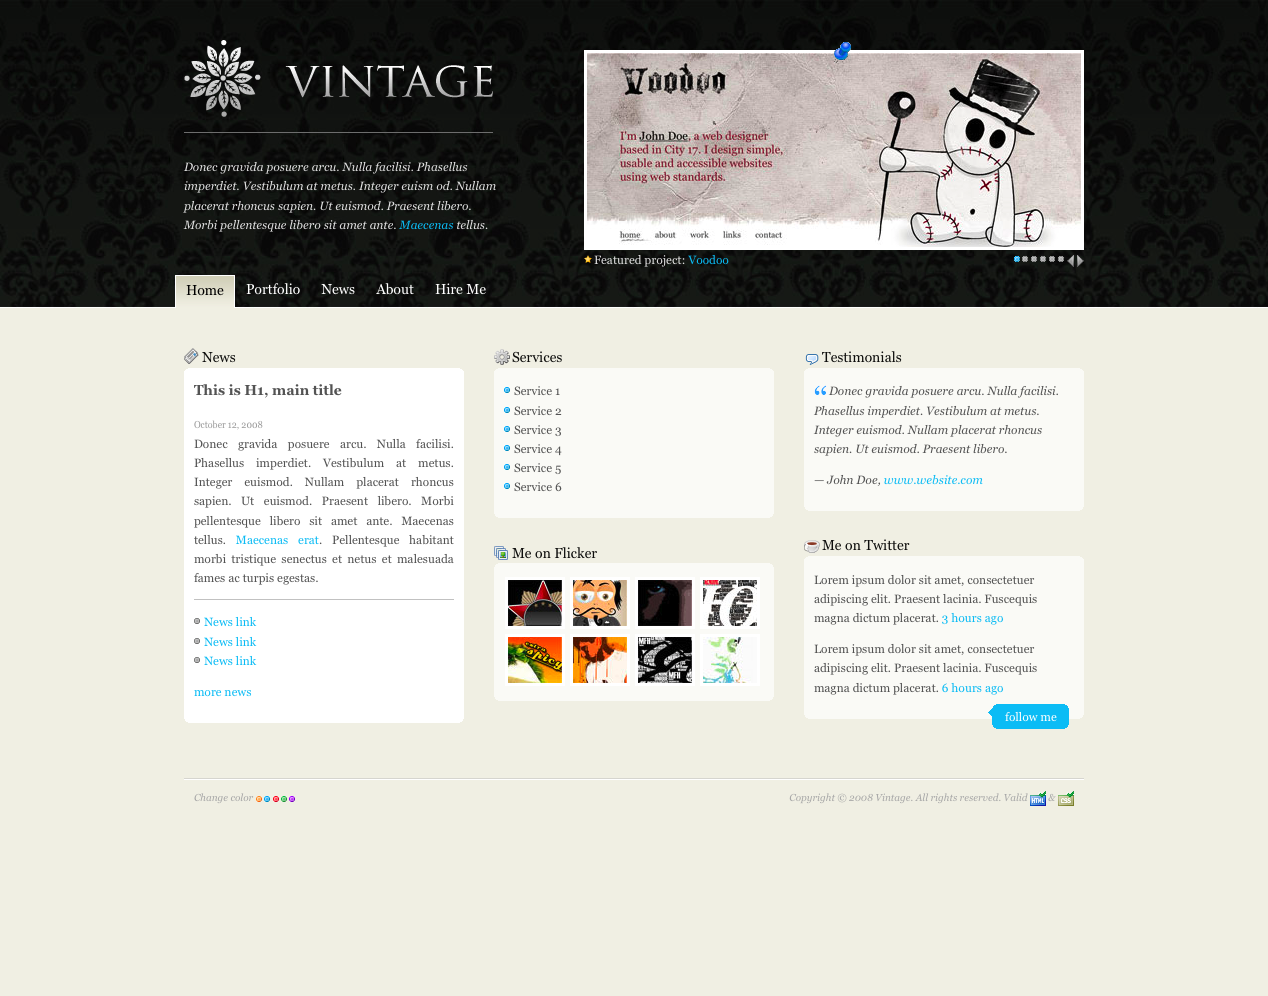 Vintage - Home Page with blue color scheme